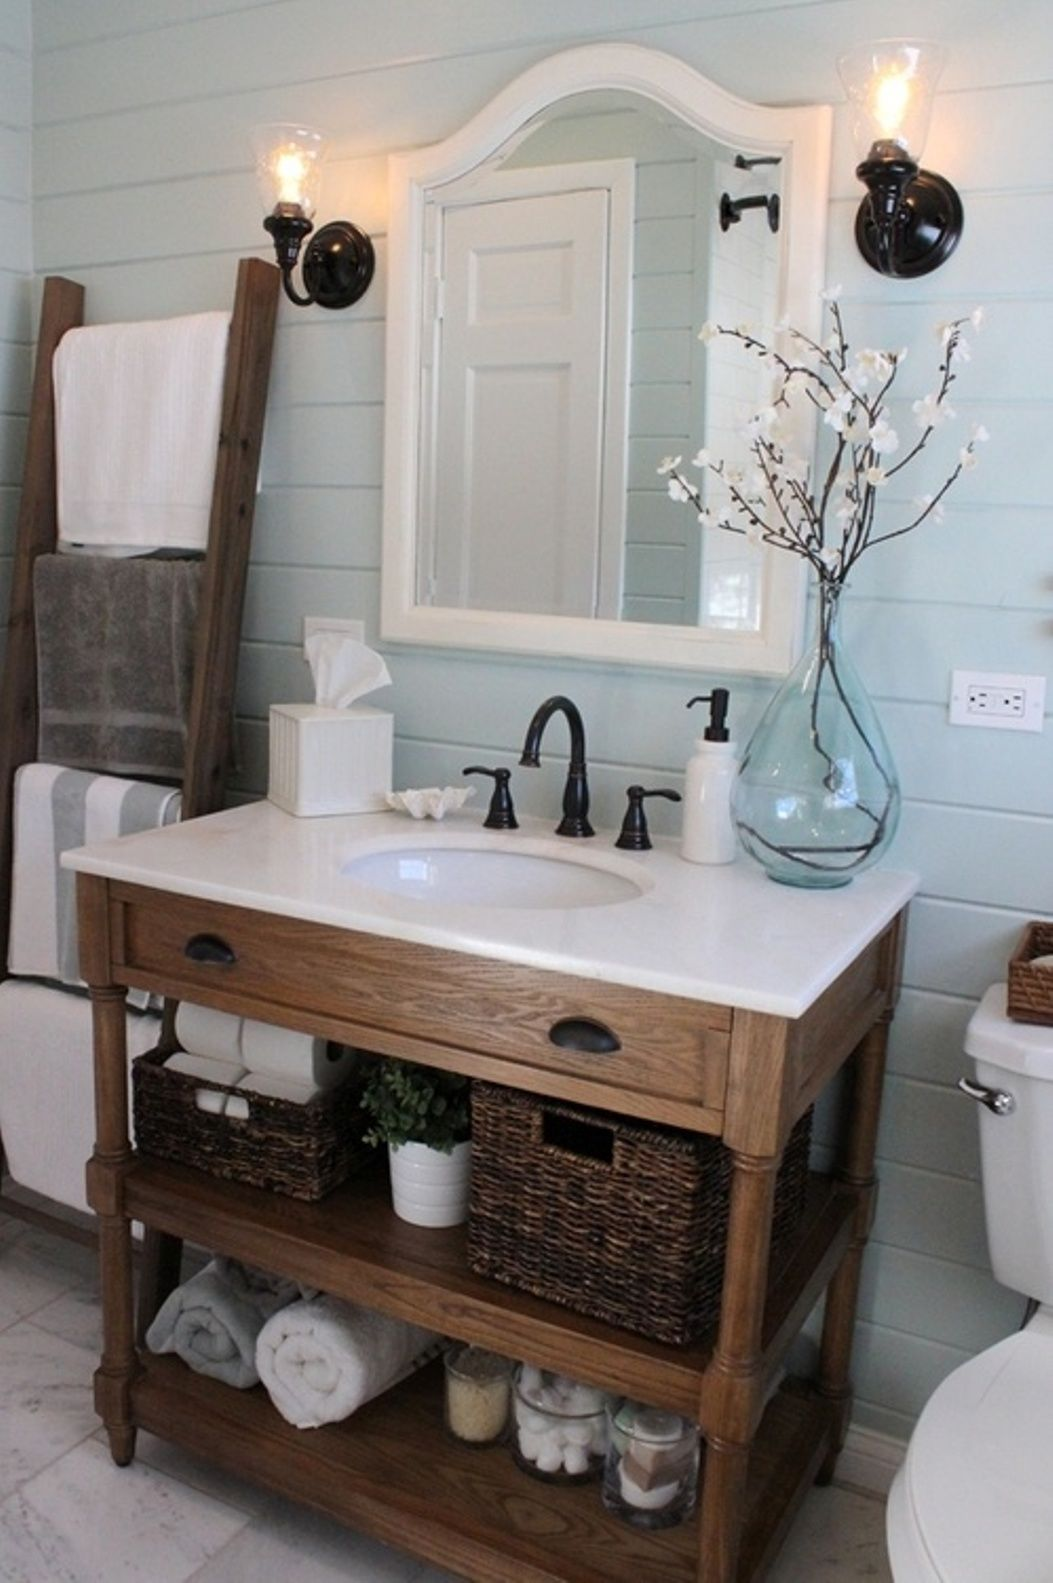 17 inspiring rustic bathroom decor ideas for cozy home for Bathroom images for home